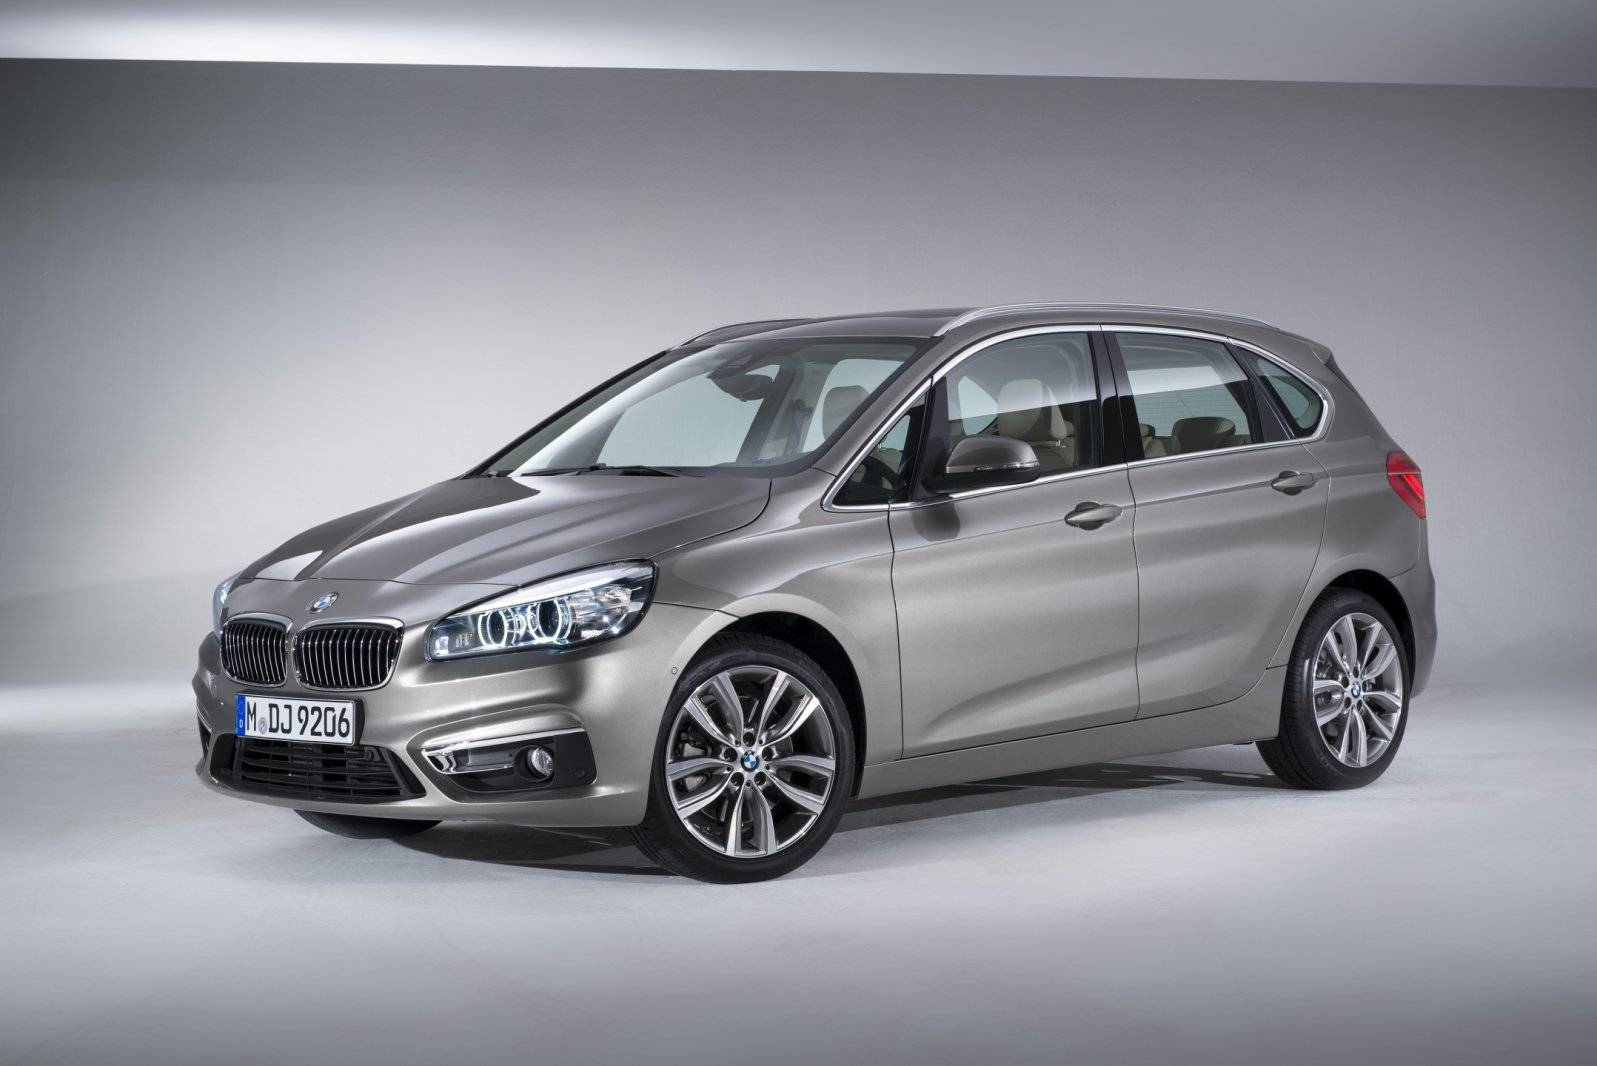 officieel bmw 2 serie active tourer inclusief richtprijs autonieuws. Black Bedroom Furniture Sets. Home Design Ideas